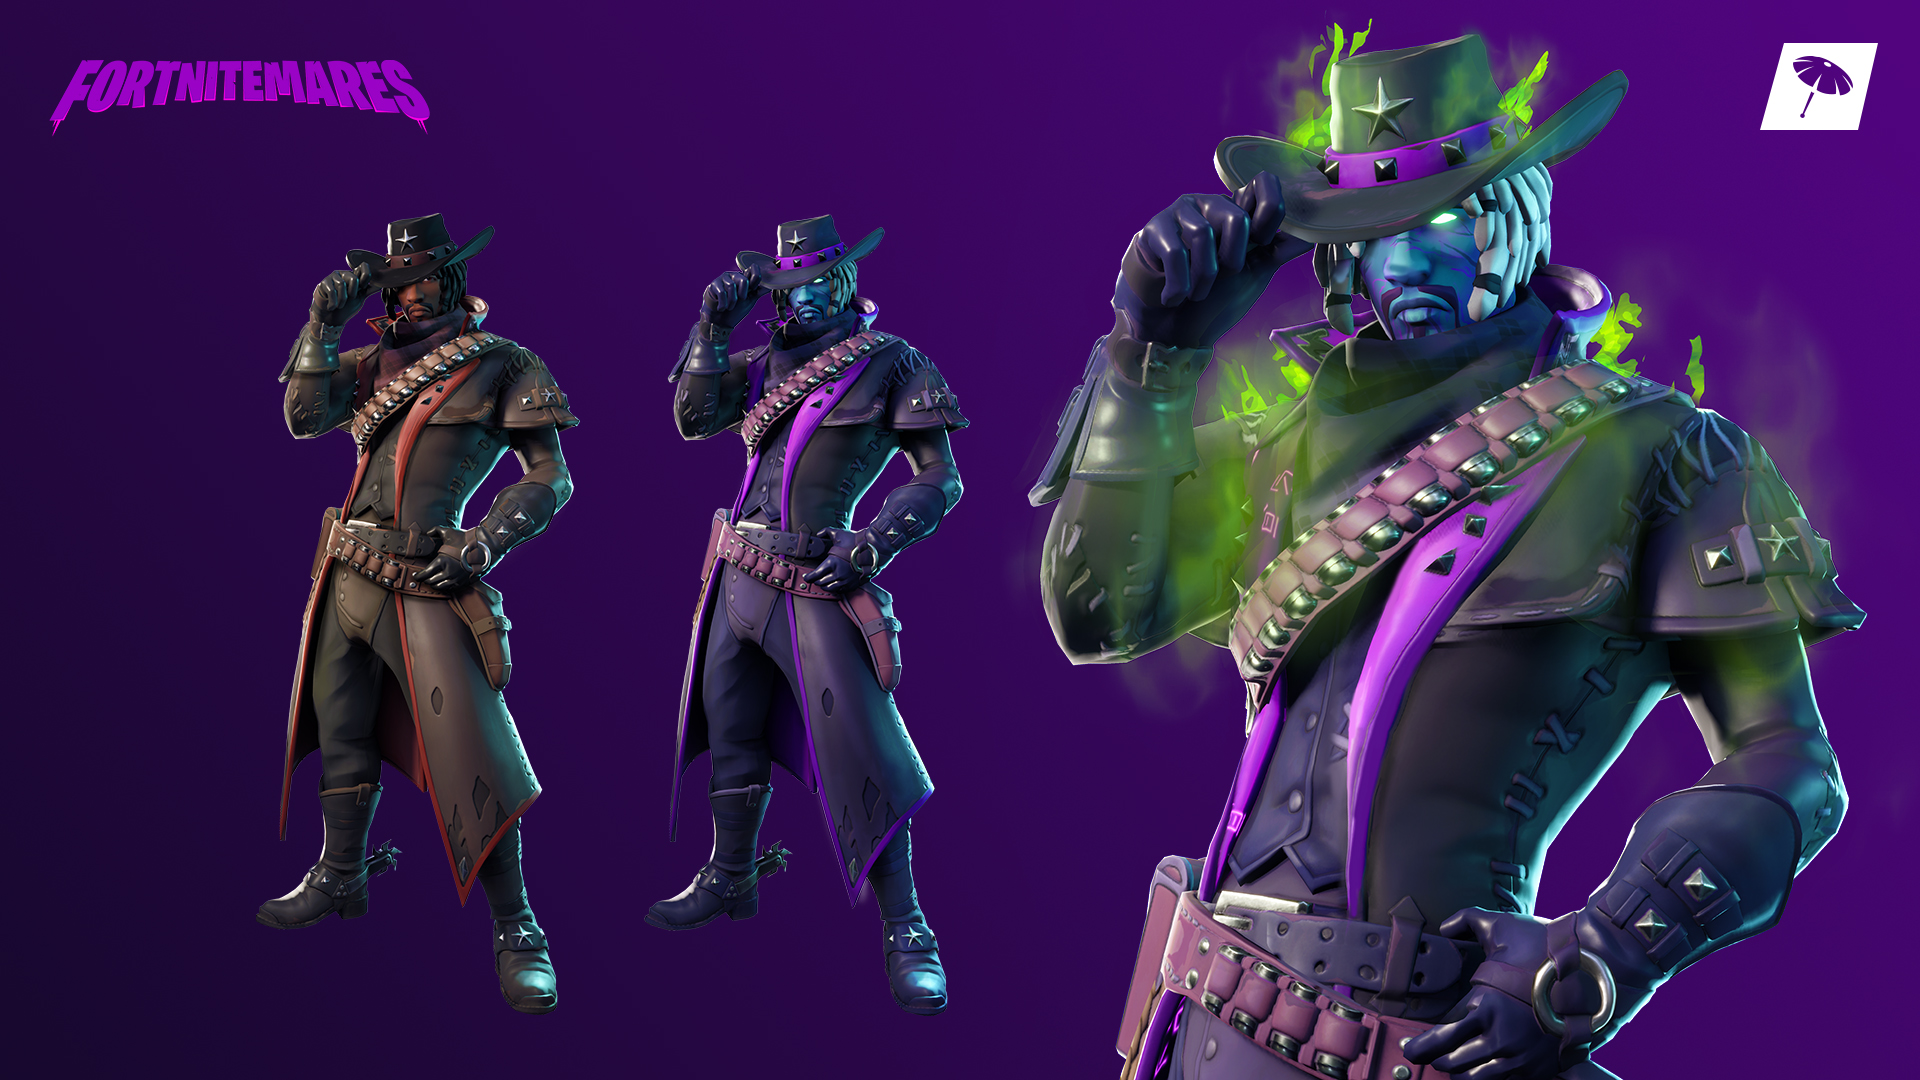 Fornite new skins leaked after fortnitemares update vg247 - Fortnite dante ...